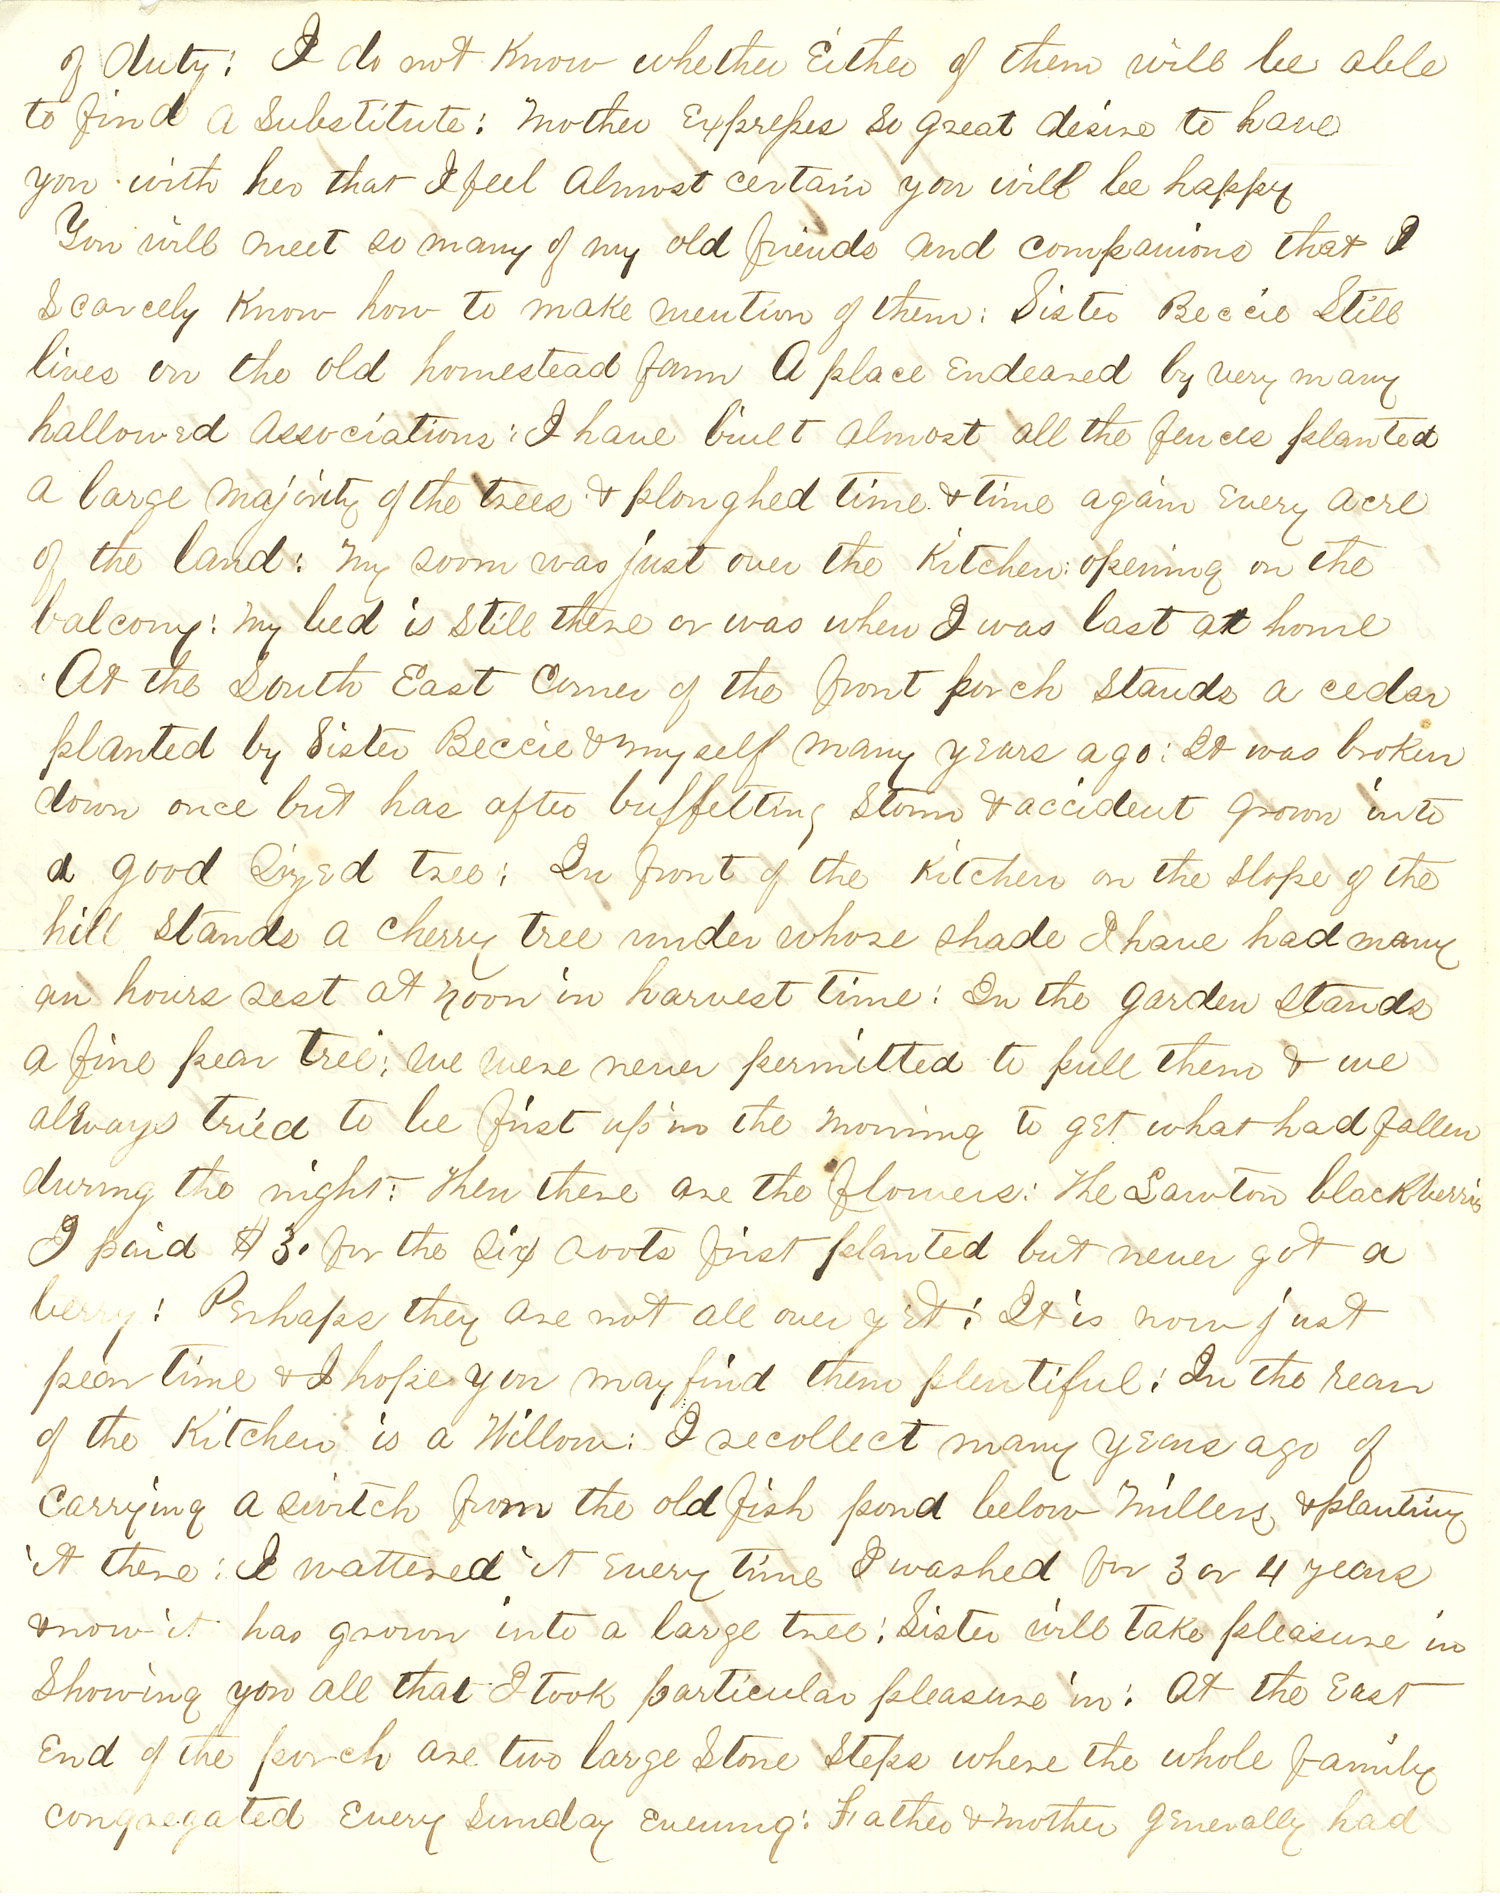 Joseph Culver Letter, August 19, 1863, Page 2